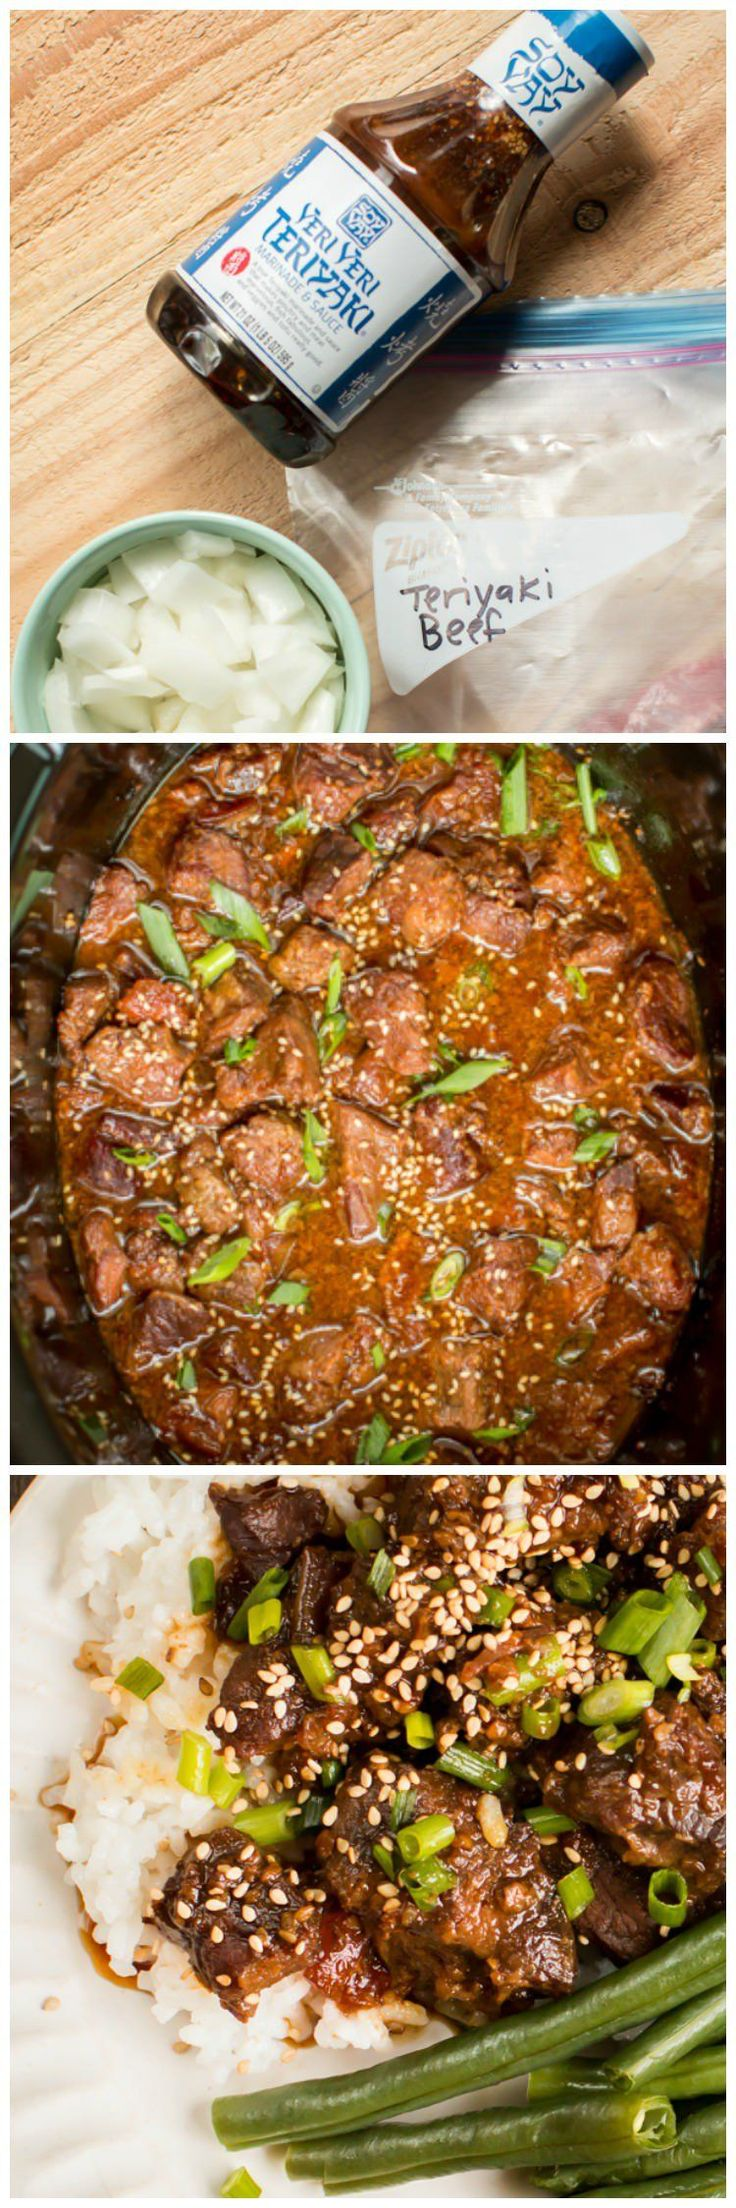 Slow Cooker Teriyaki Beef. Only 3 ingredients to get this meal started in the slow cooker! Can be made into a freezer meal!